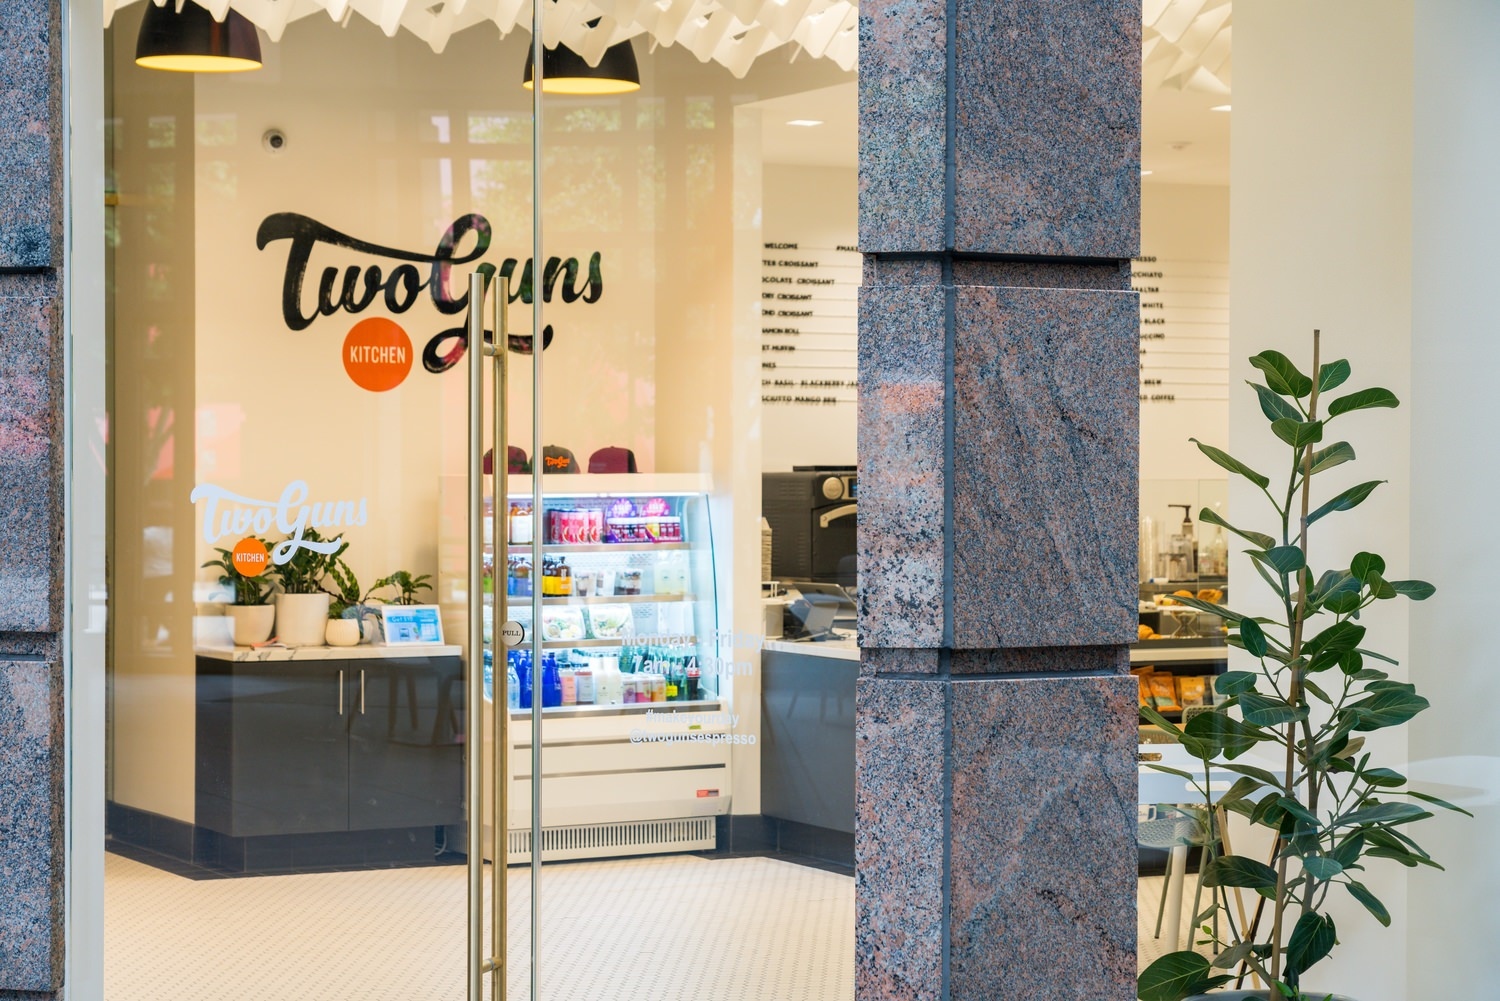 Two guns kitchen lobby showcasing food items at one end and having some potted plants at the other end.